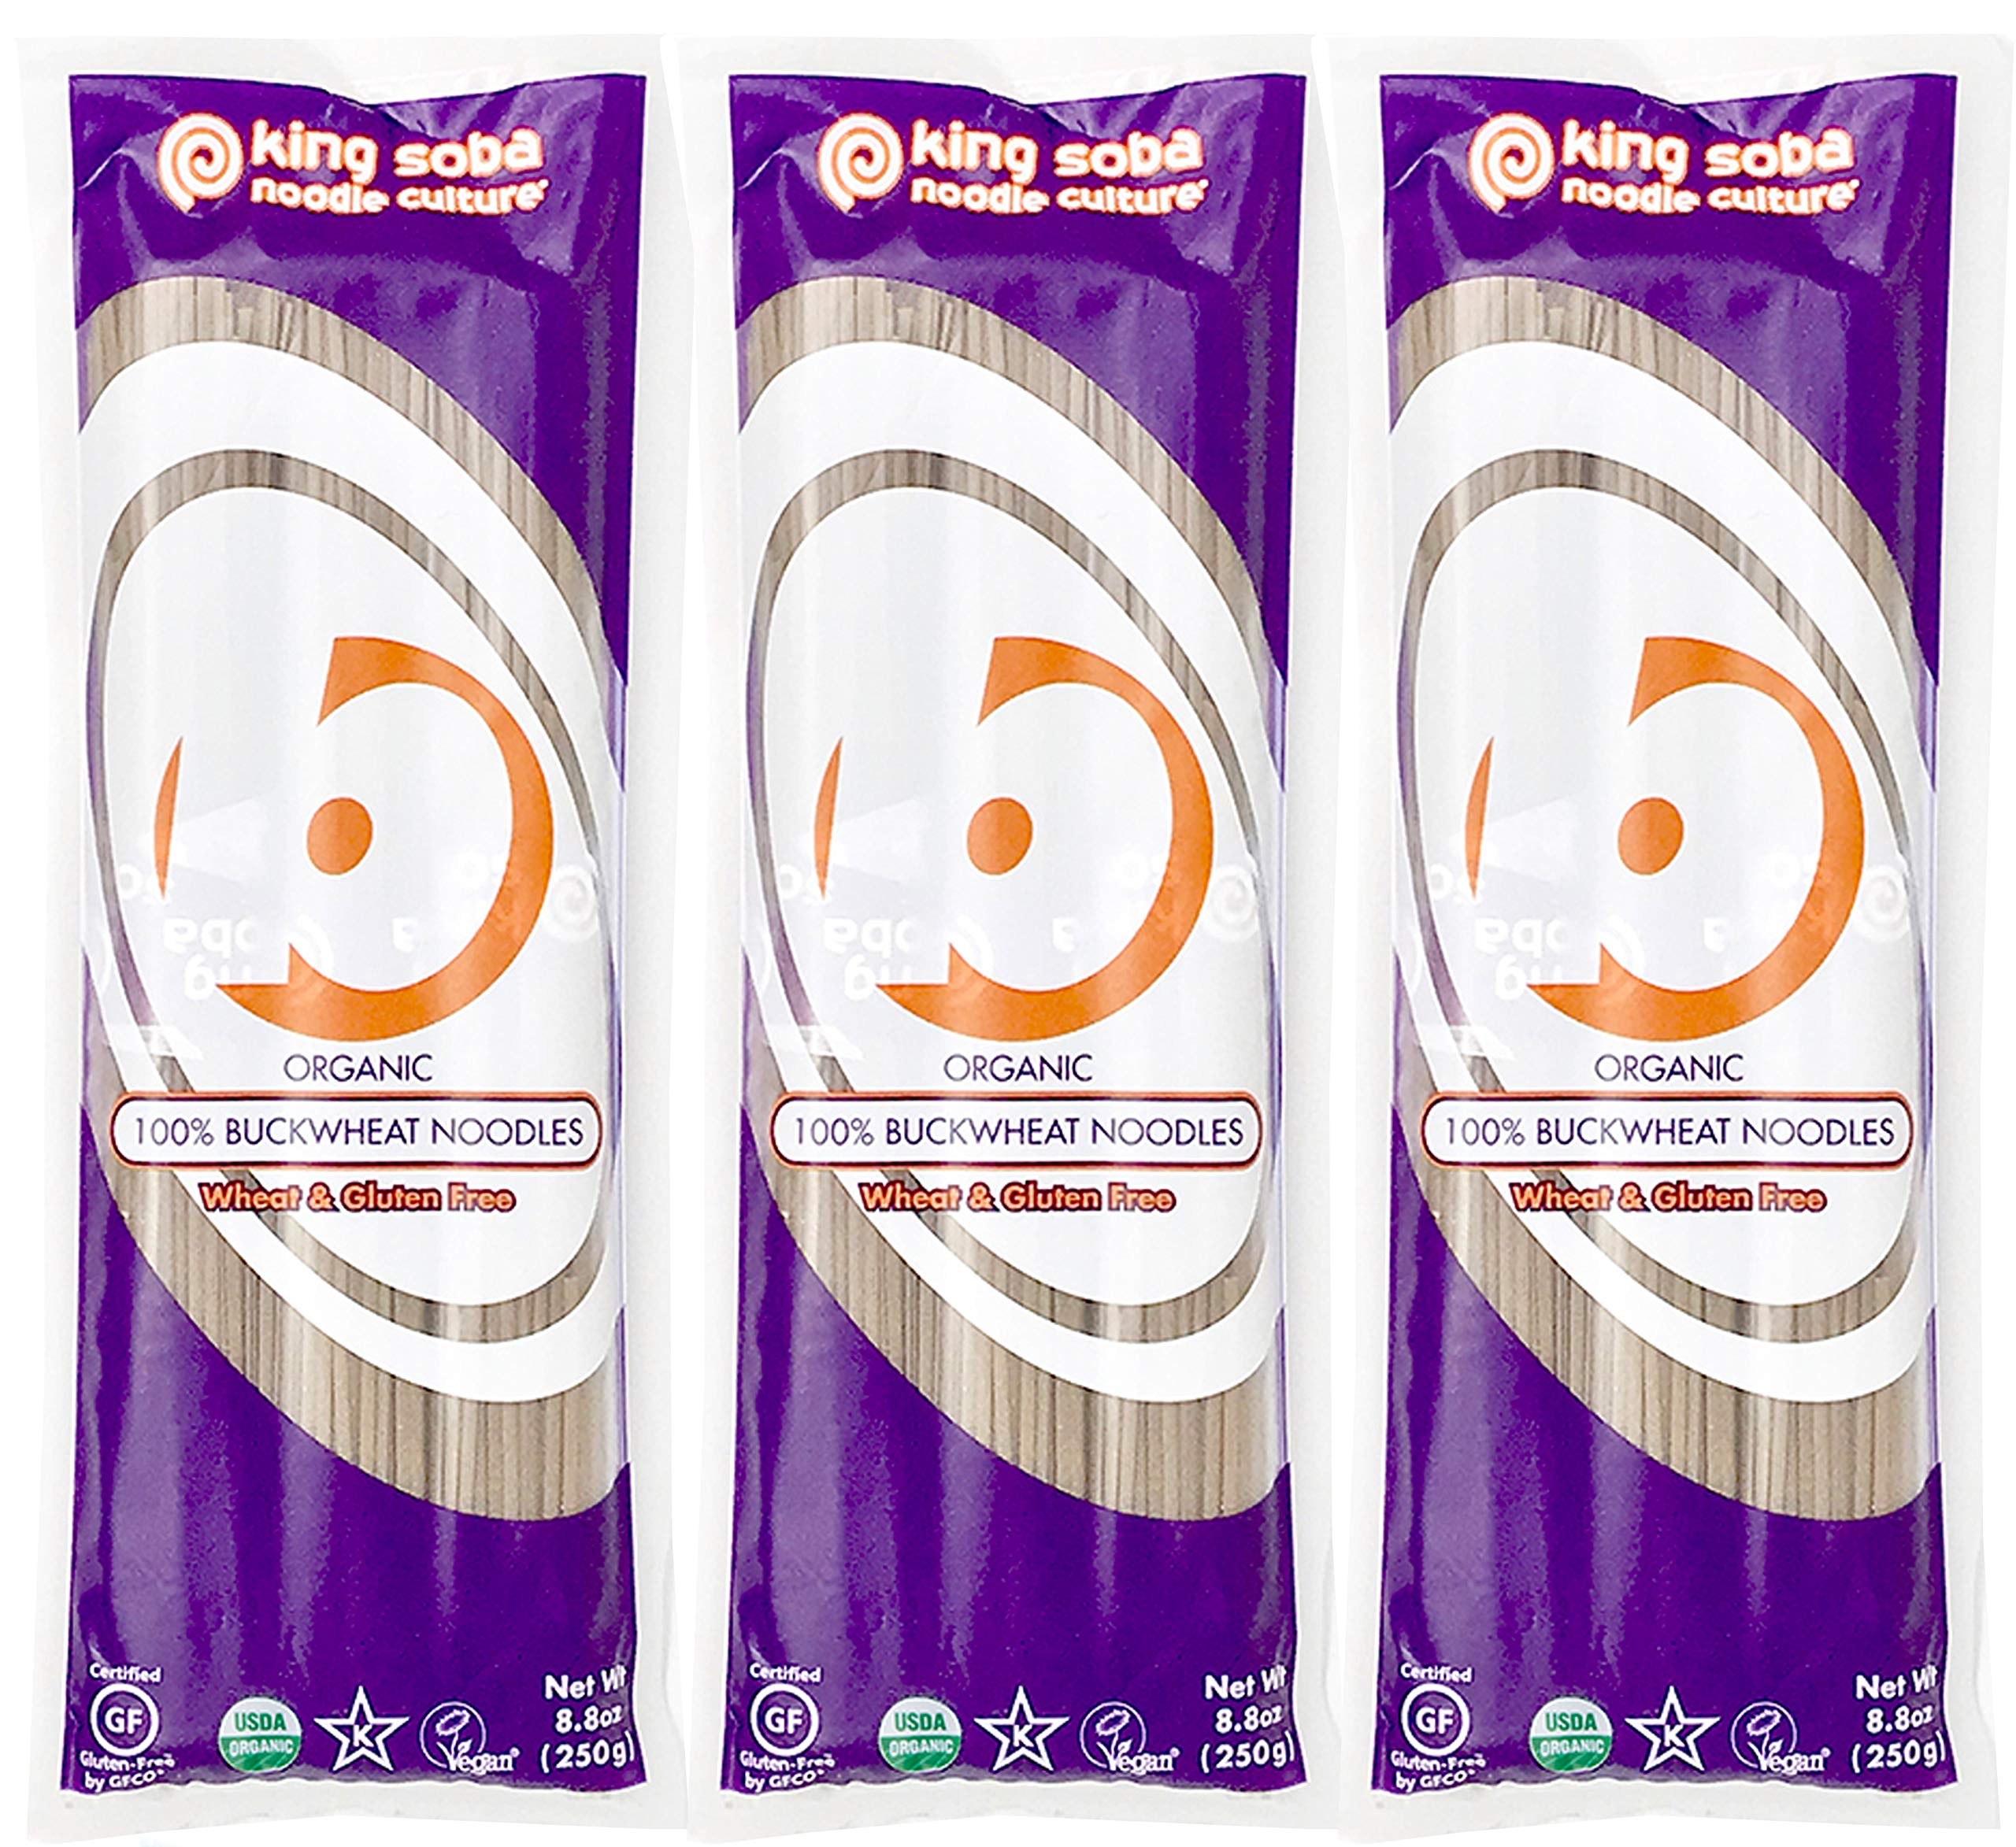 King Soba 3-PACK Gluten Free, Organic 100% Buckwheat Pasta Noodles - Sodium Free, 8.8oz - 3 servings per package by King Soba Noodle Culture